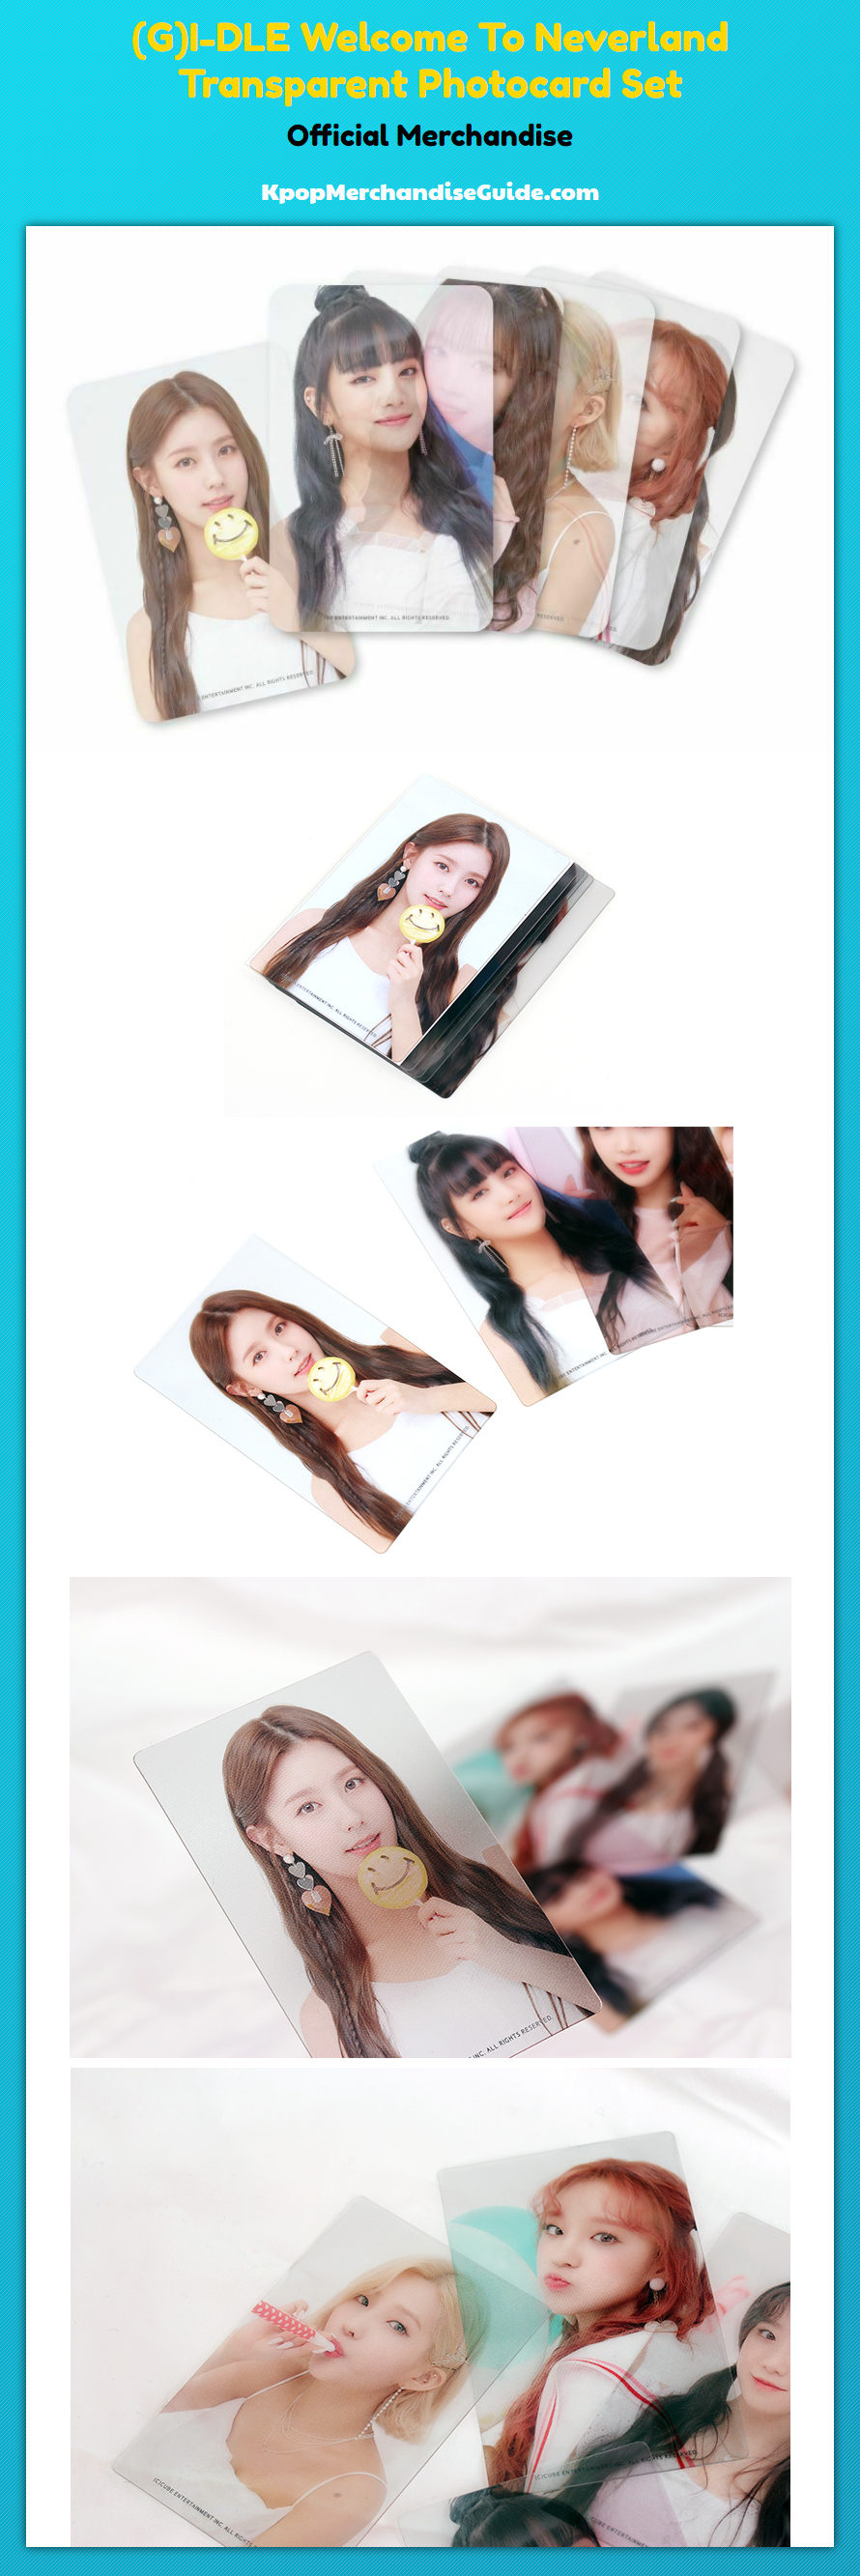 gi dle welcome to the neverland transparent photocards details